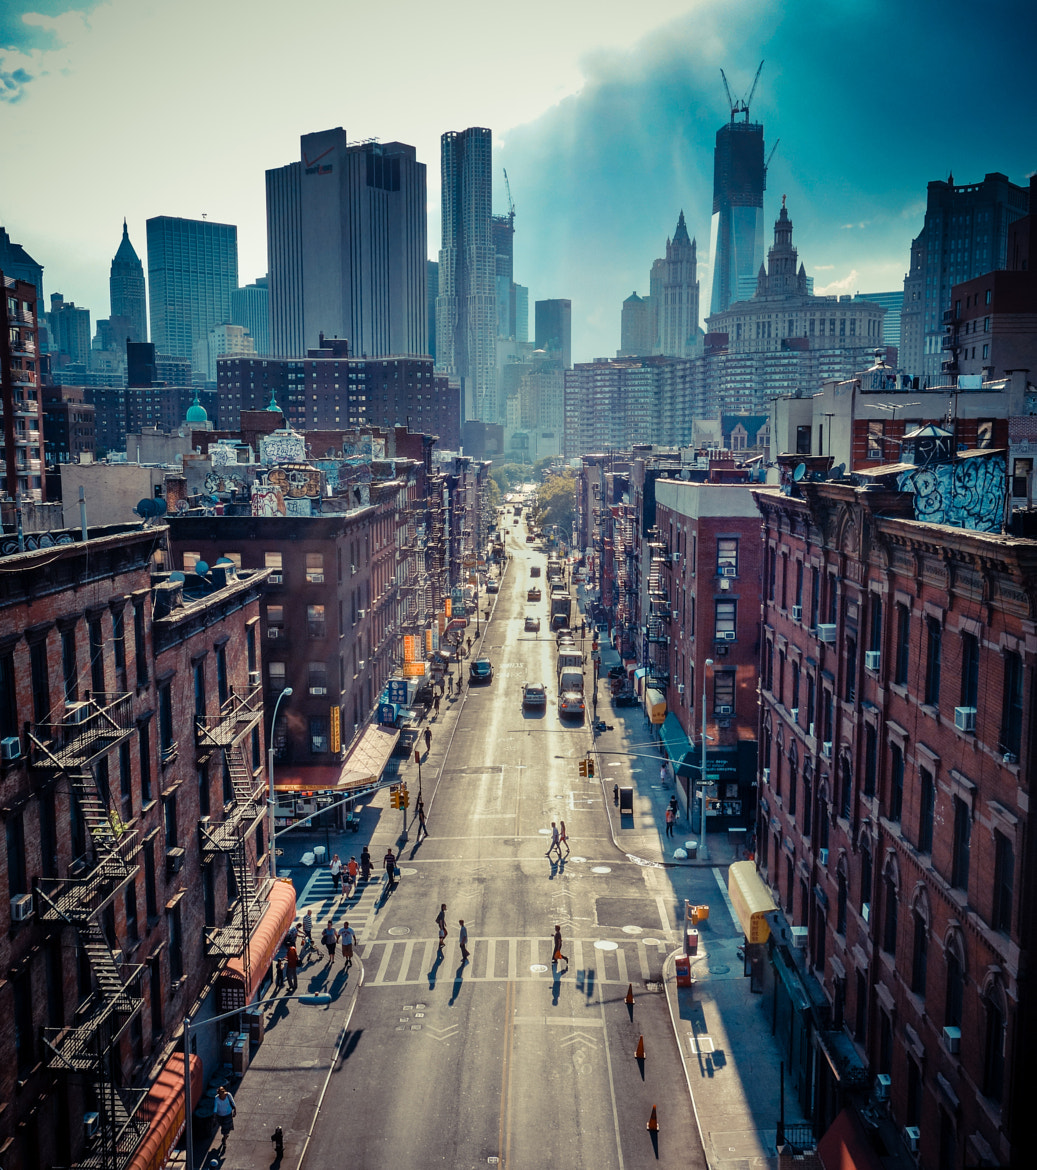 Photograph View From Manhattan Bridge by Paul Katcher on 500px